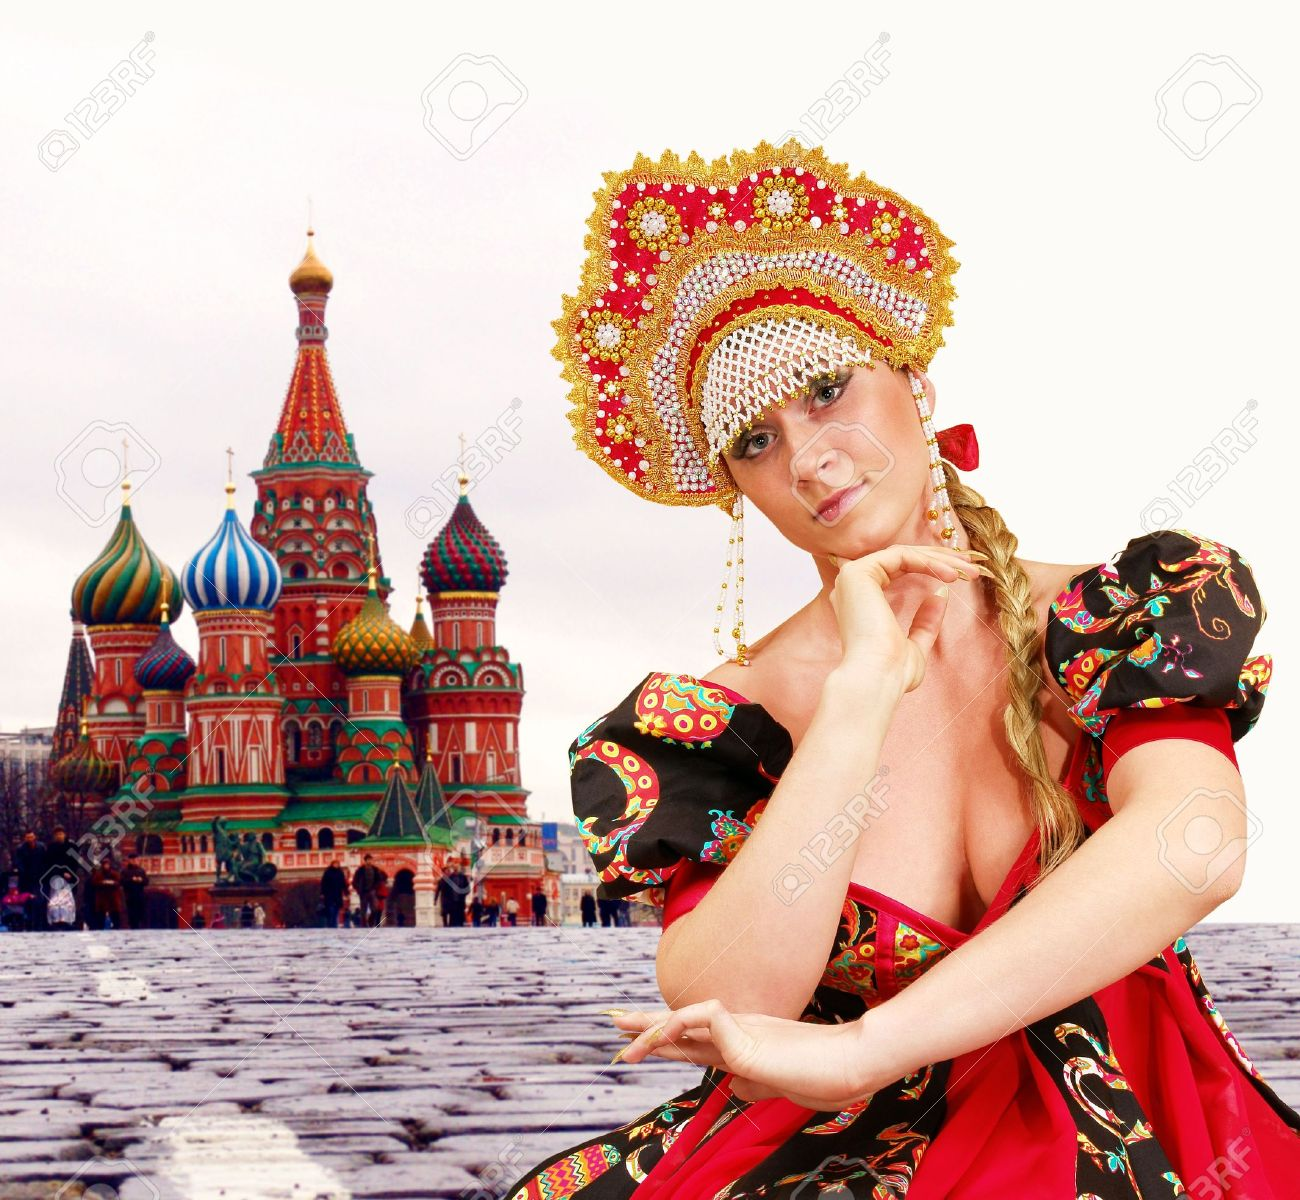 dancing girl in traditional russian dress red square moscow dancing girl in traditional russian dress red square moscow stock photo 2187185